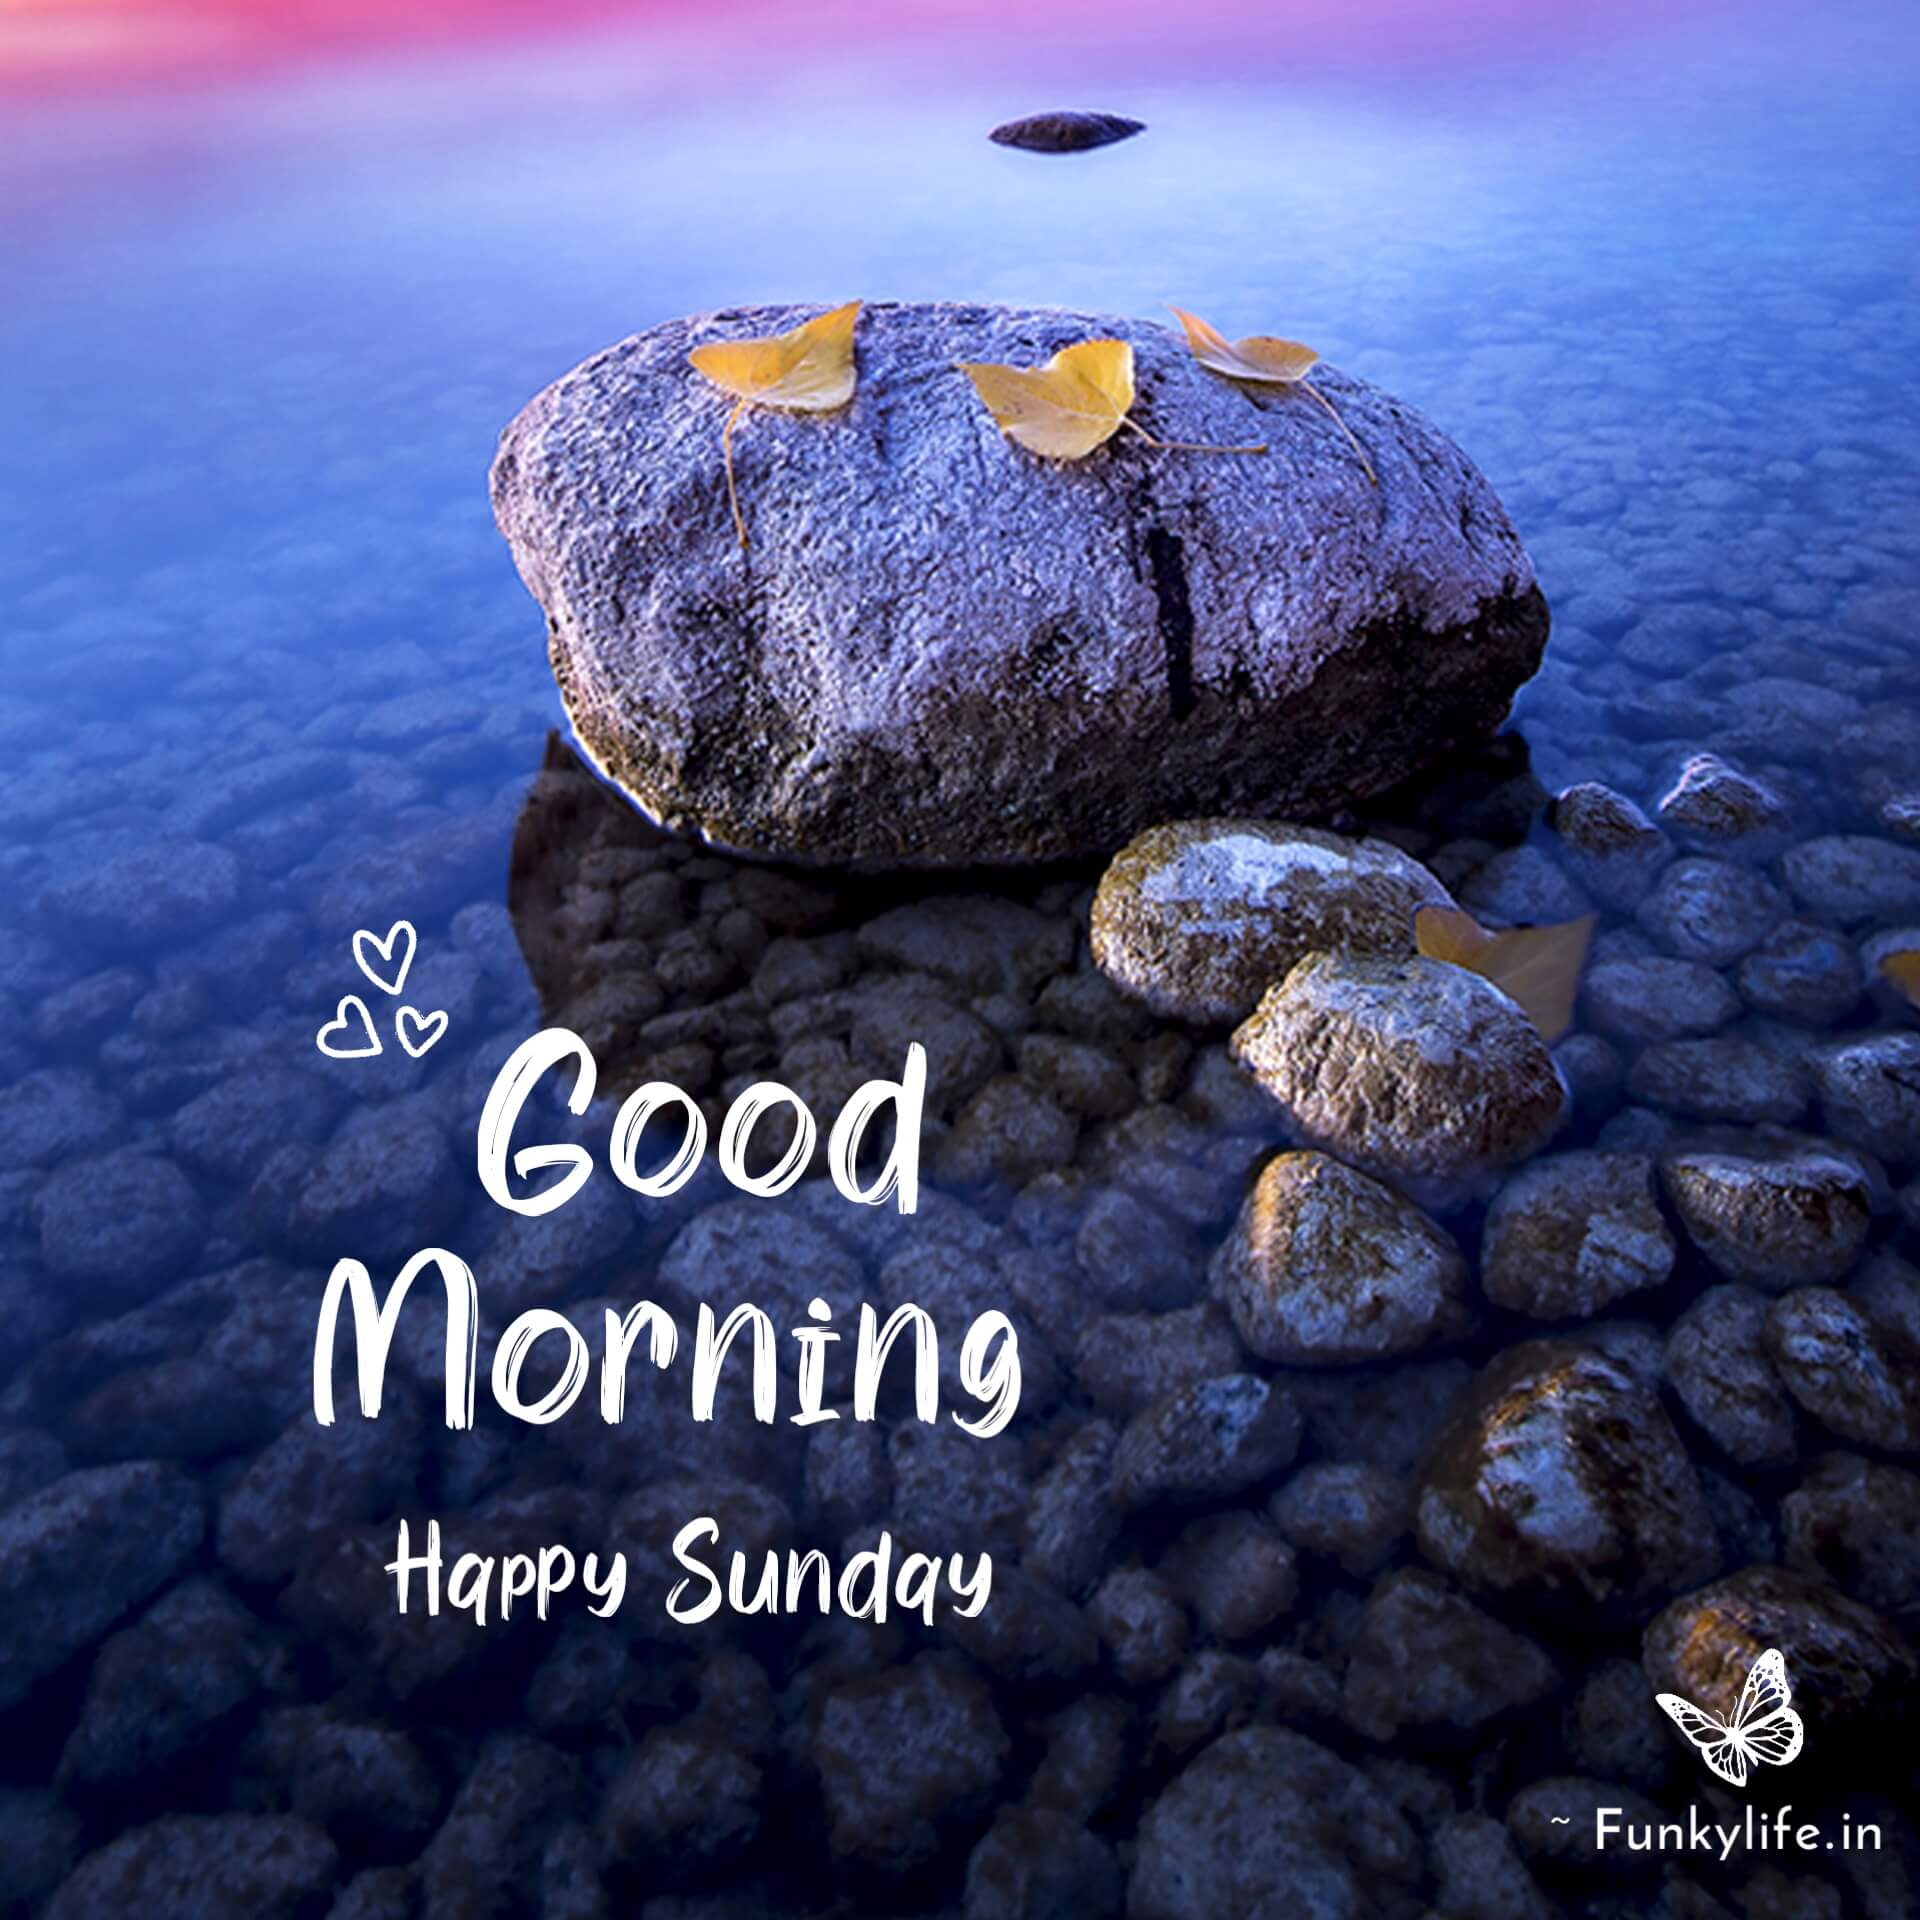 Good Morning Images for Sunday